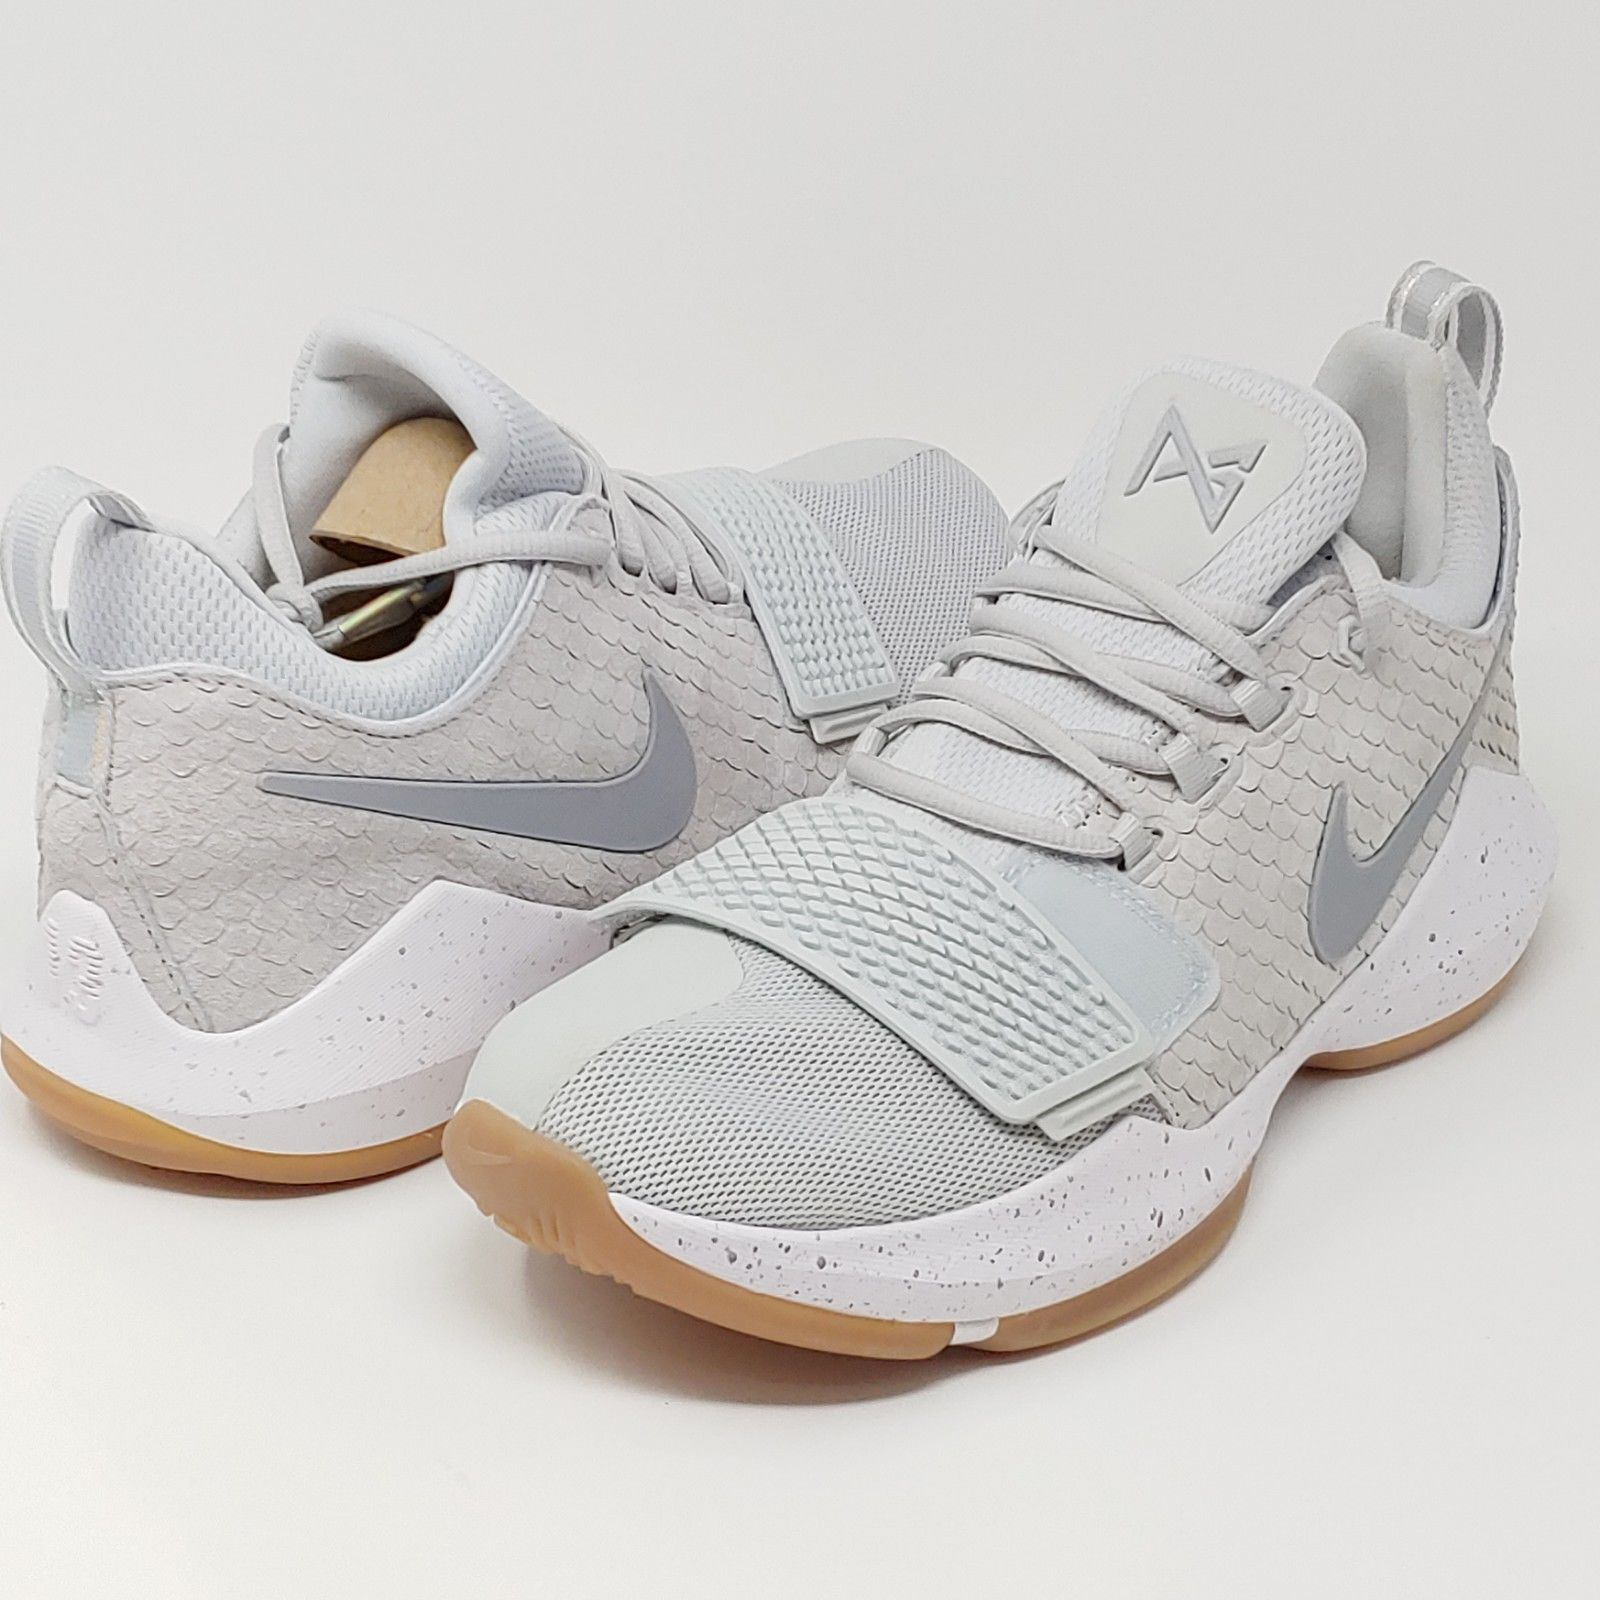 a2a3f2ffba299b ... Nike Paul George PG1 Pure Platinum Wolf Grey Basketball Sneakers Mens  Size 9.5 ...